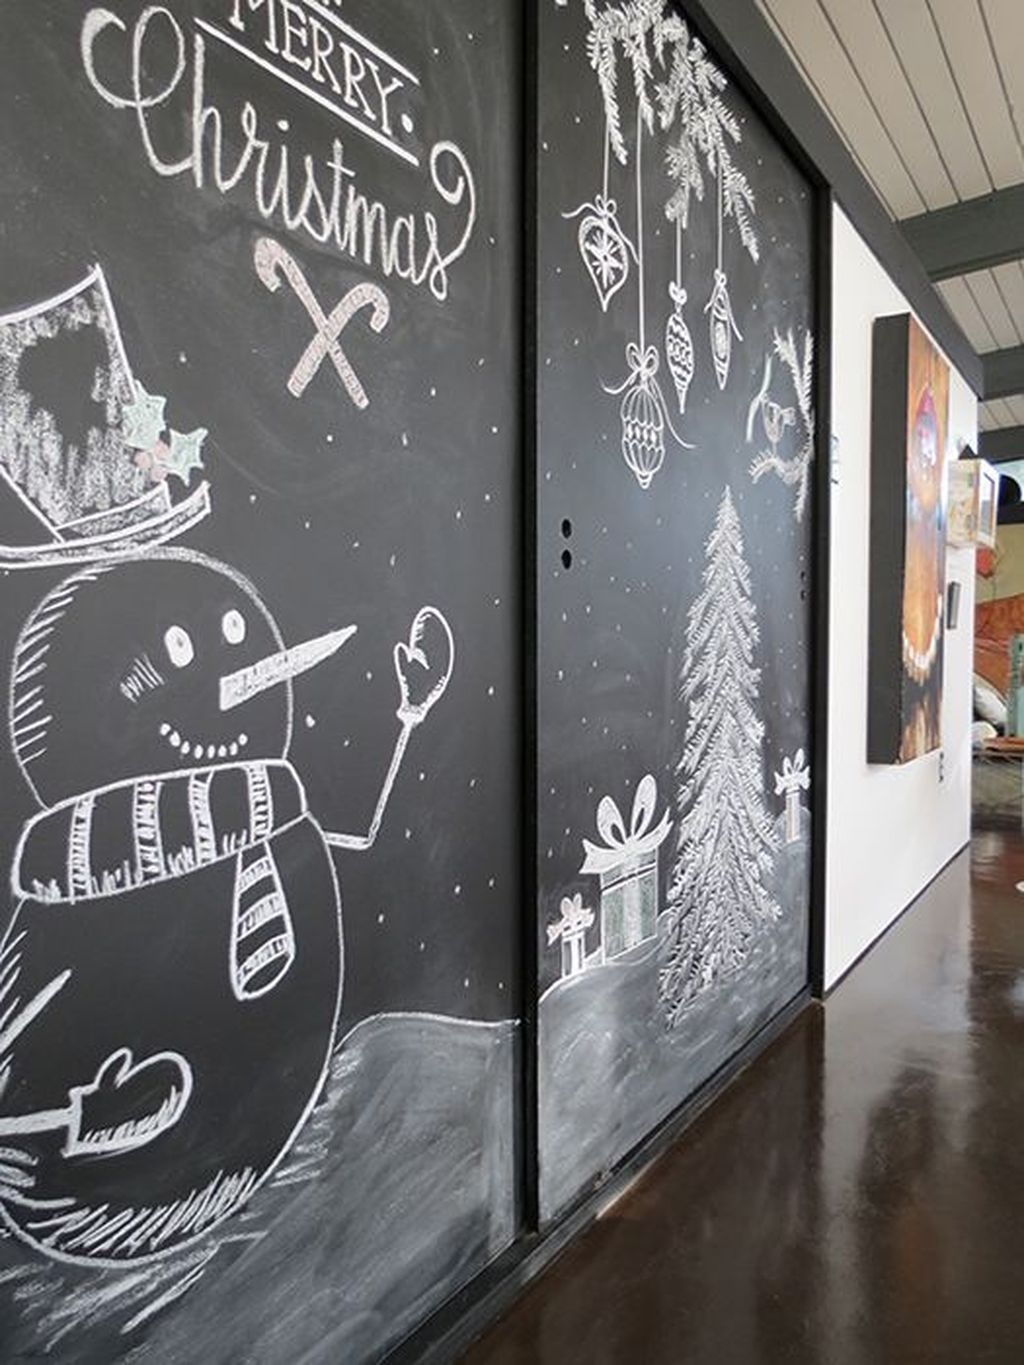 Inspiring Christmas Chalkboard Signs Design Ideas 21